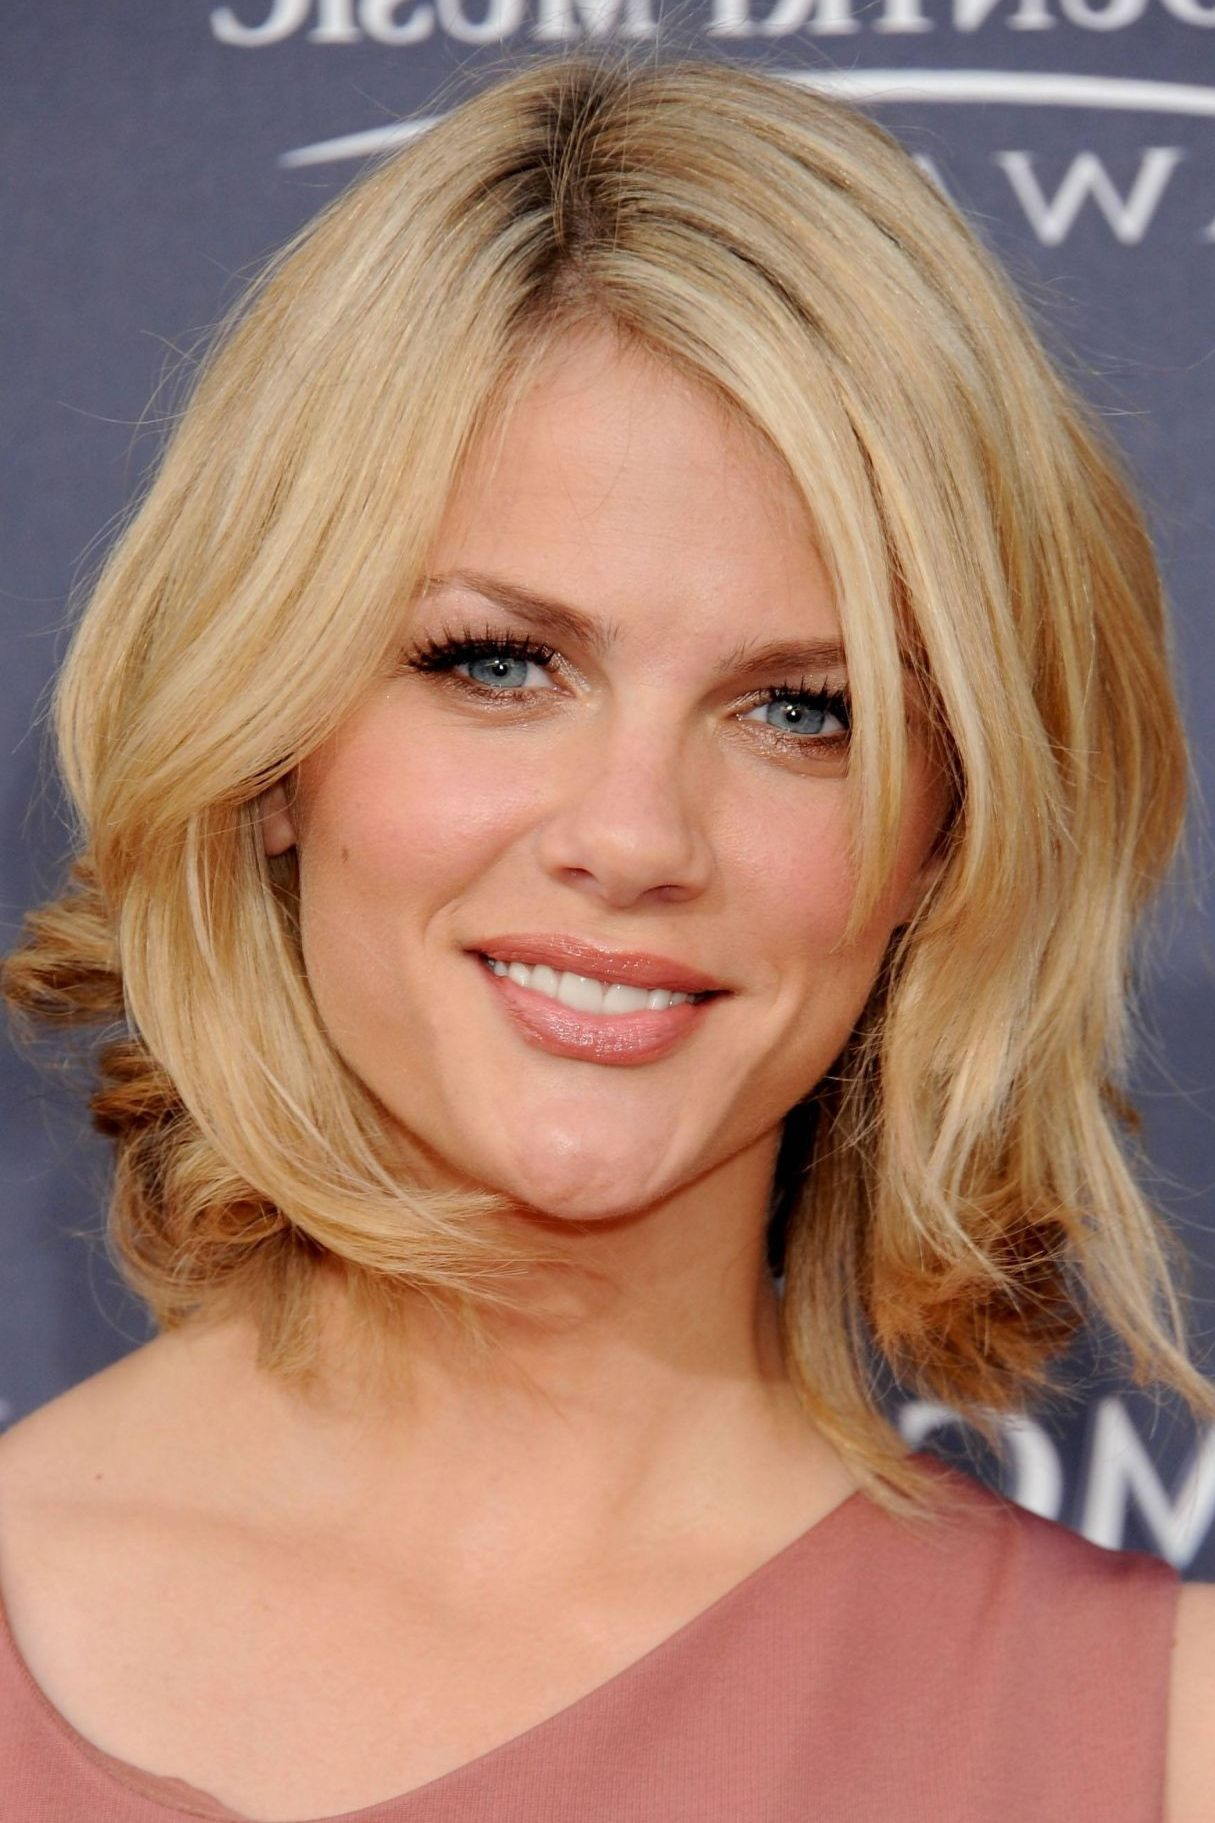 13+ Medium hairstyles for thin hair over 40 ideas in 2021